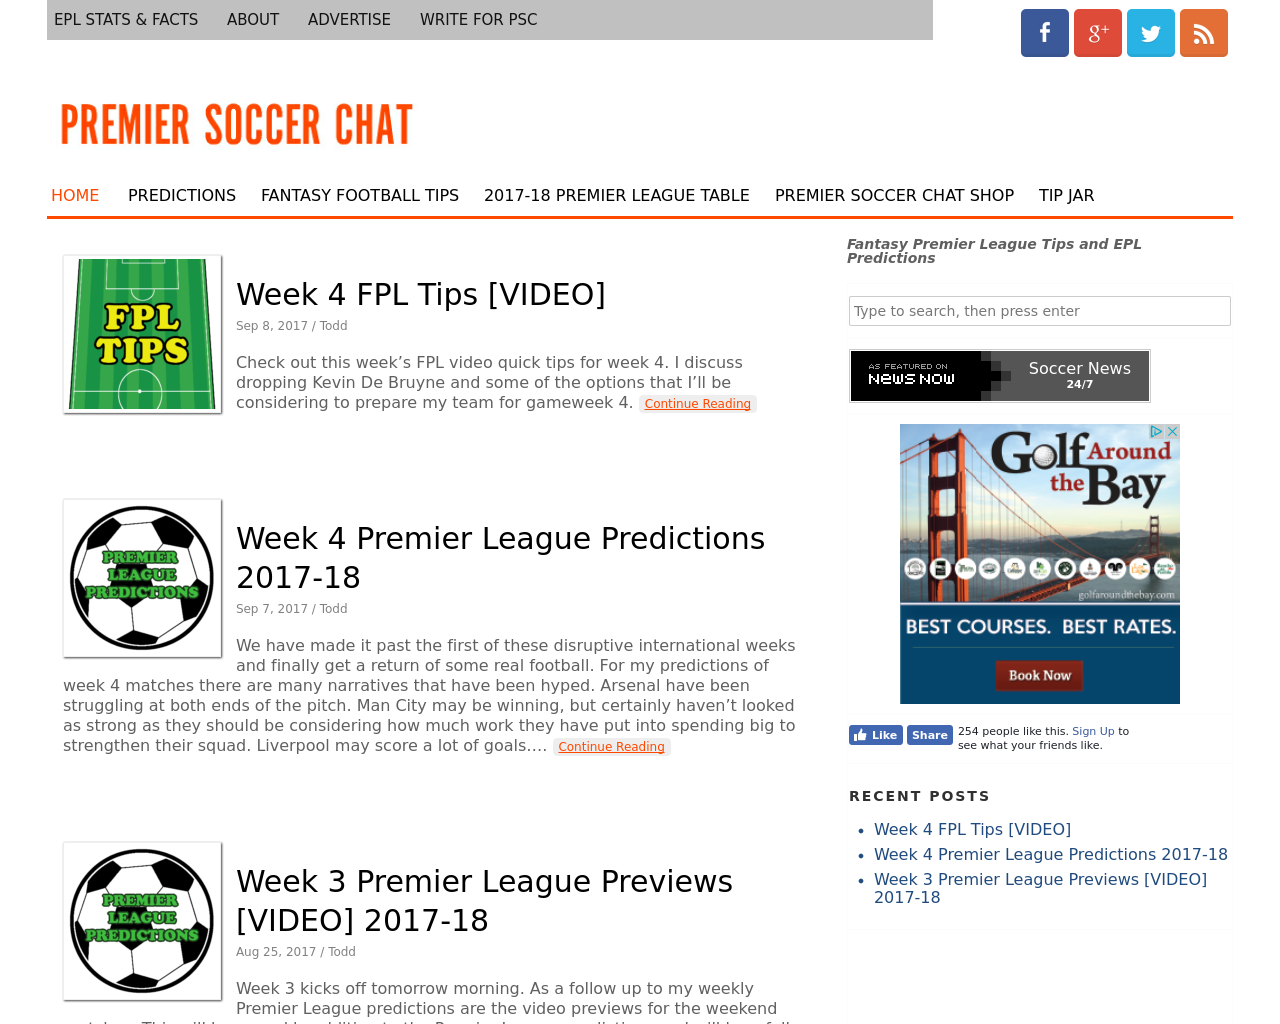 Premiersoccerchat.com-Advertising-Reviews-Pricing